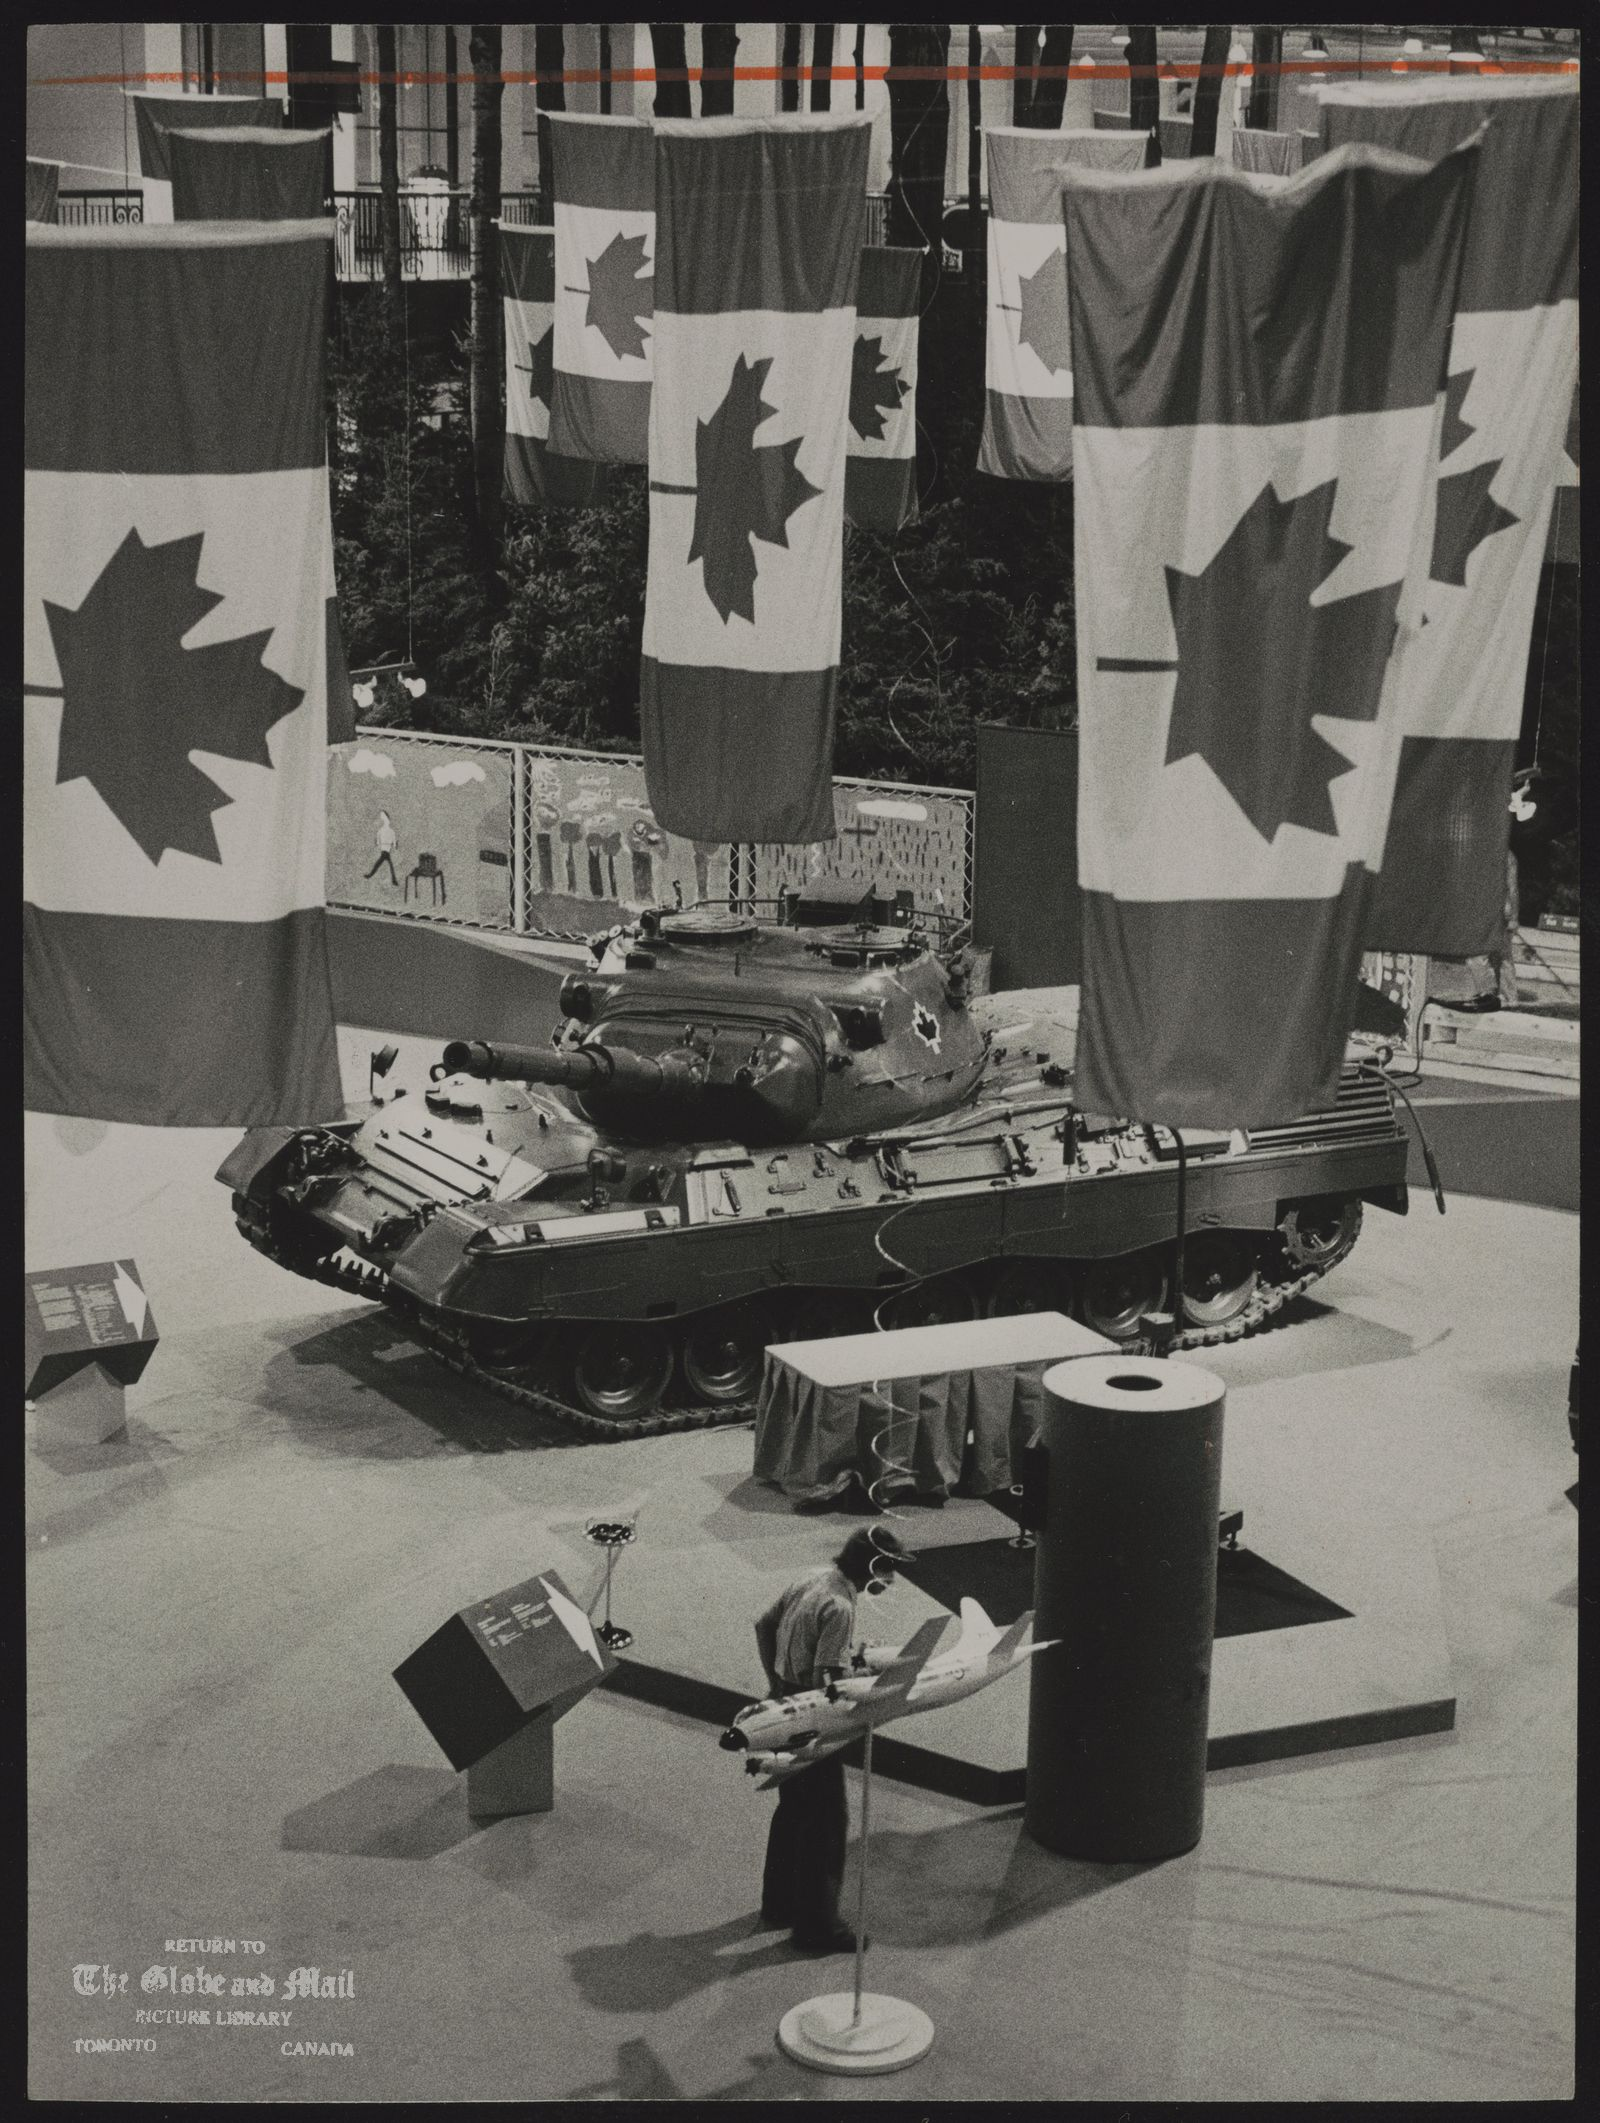 The notes transcribed from the back of this photograph are as follows: CANADIAN NATIONAL EXHIBITION Misc. This Leopard C1 tank, made in West Germany, will be on display in Our Canada pavillion when CNE opens today.